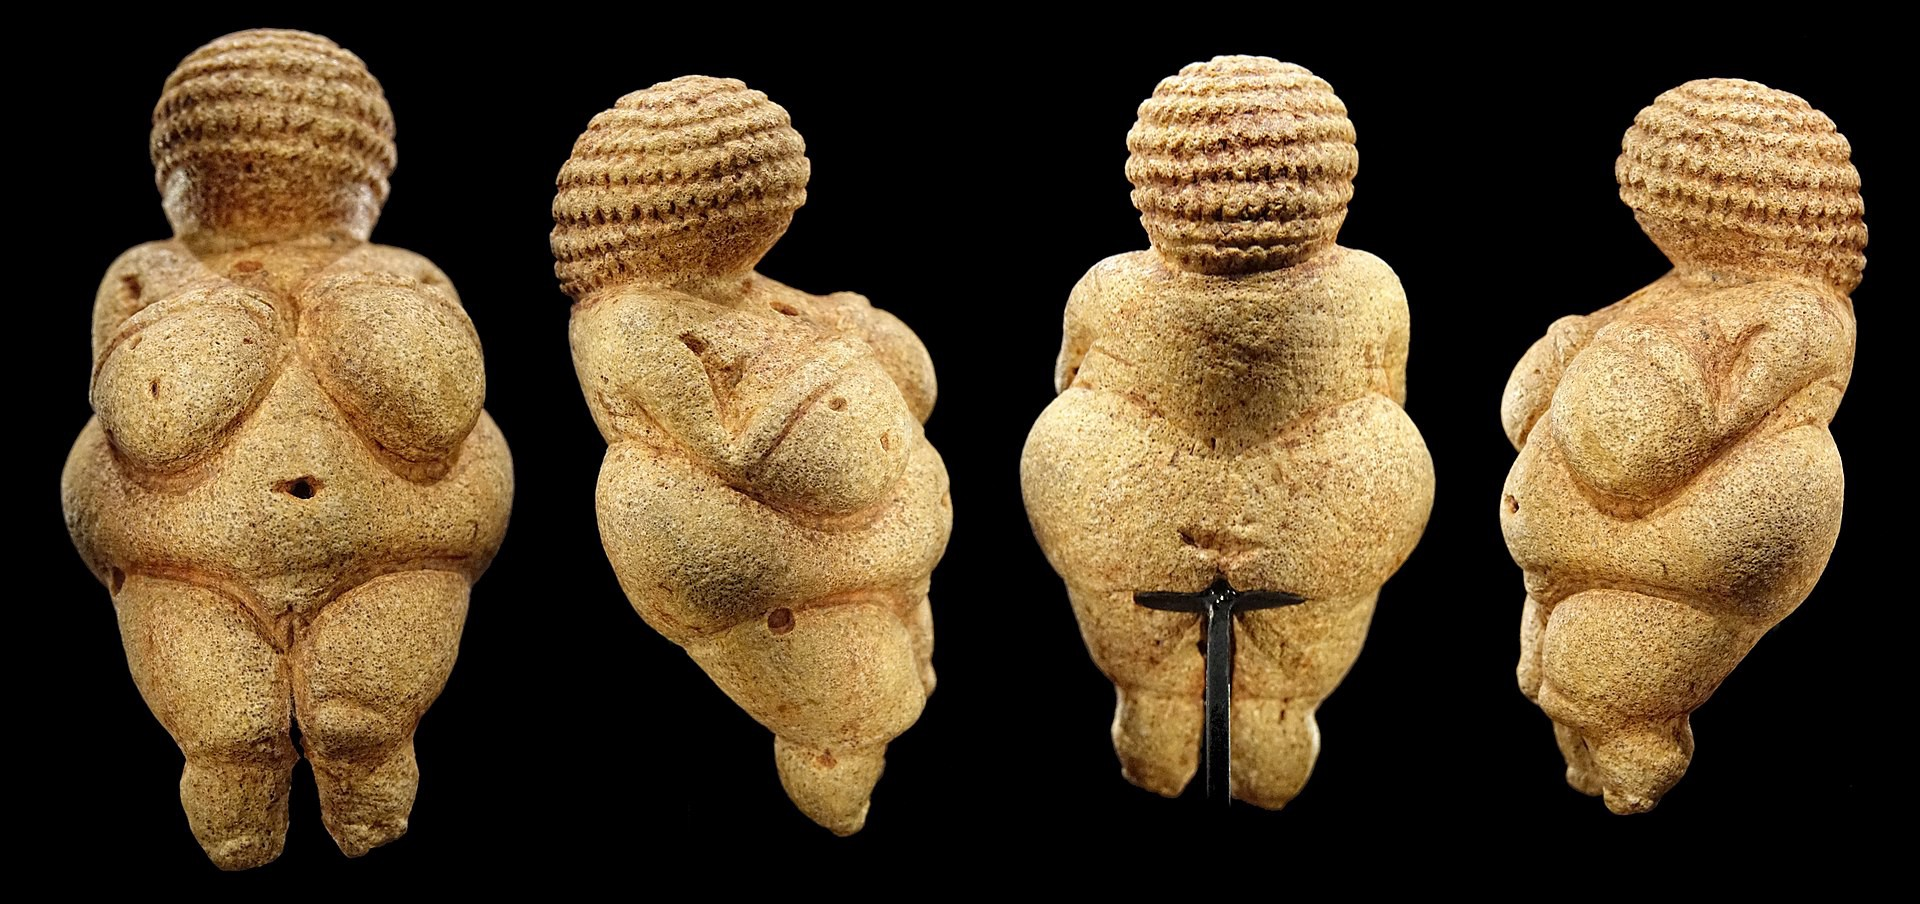 Venus of Willendorf, a small fertility goddess sculpture with exagerated head, breasts, and hips.